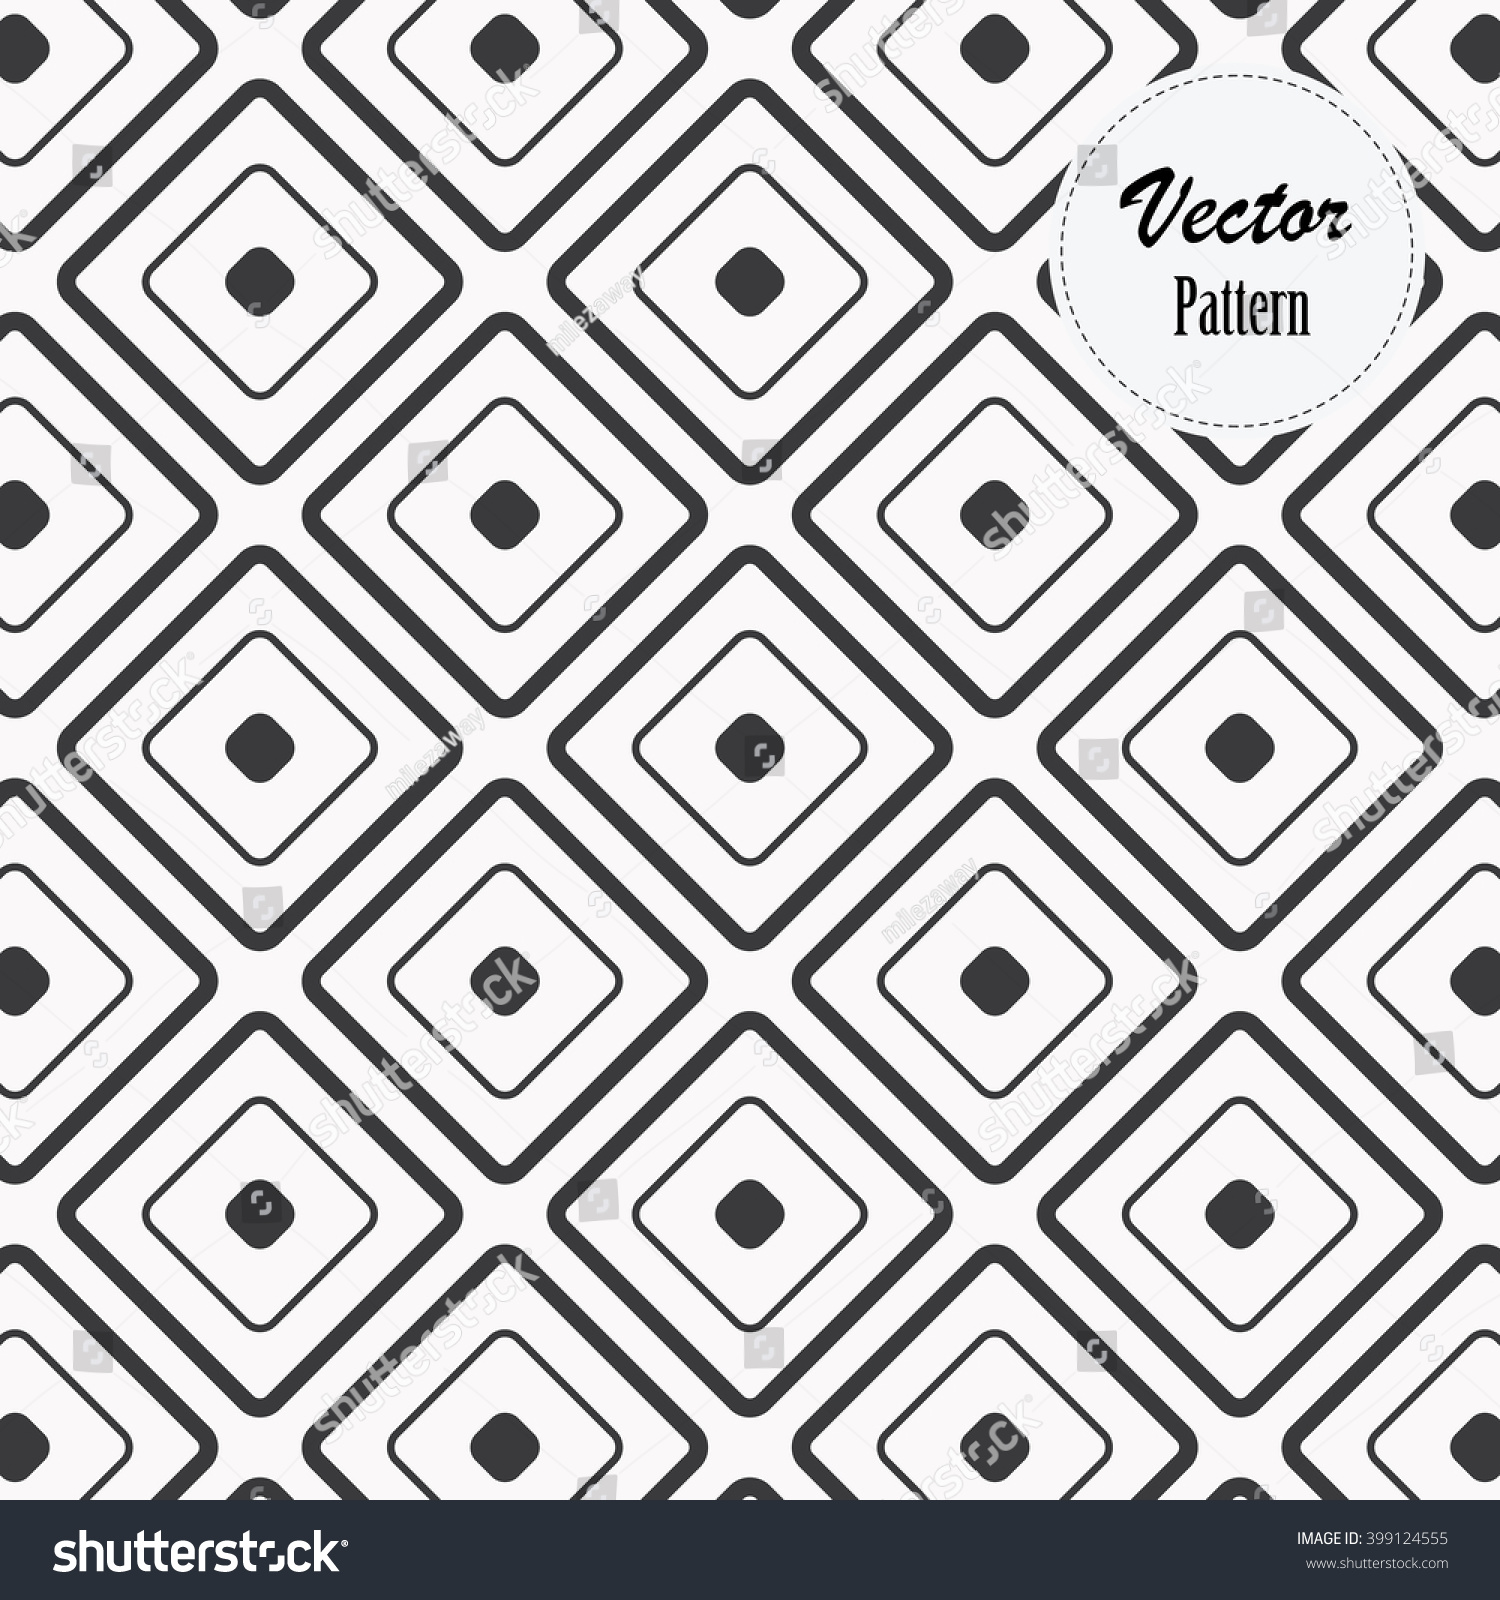 stock of rounded hd royalty monochrome or pattern corner stylish diamond image vector shape squares